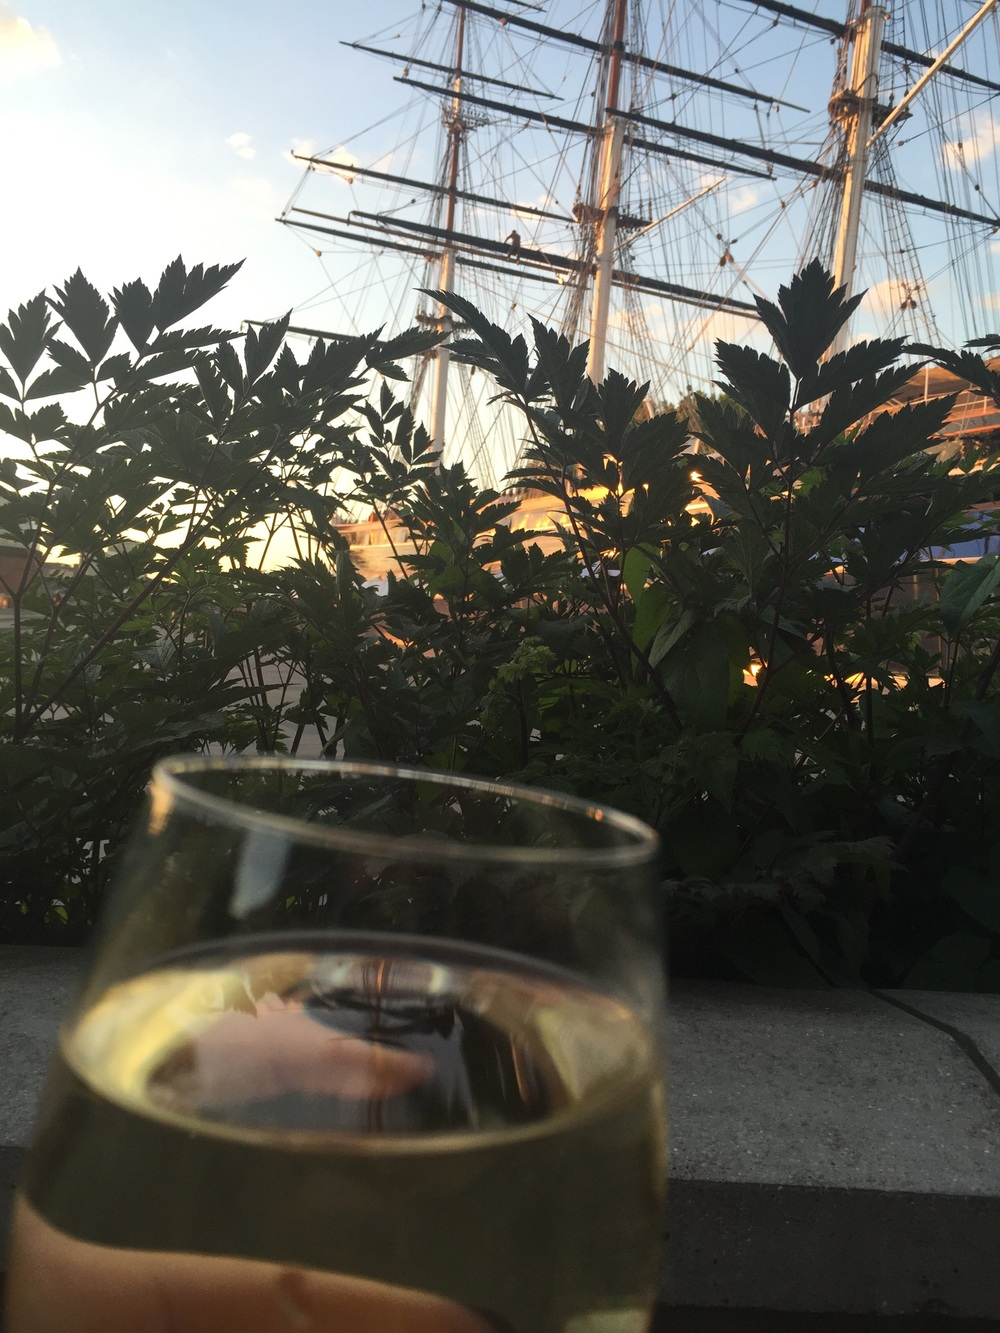 Drinks with a view, catching up with Helen in Greenwich